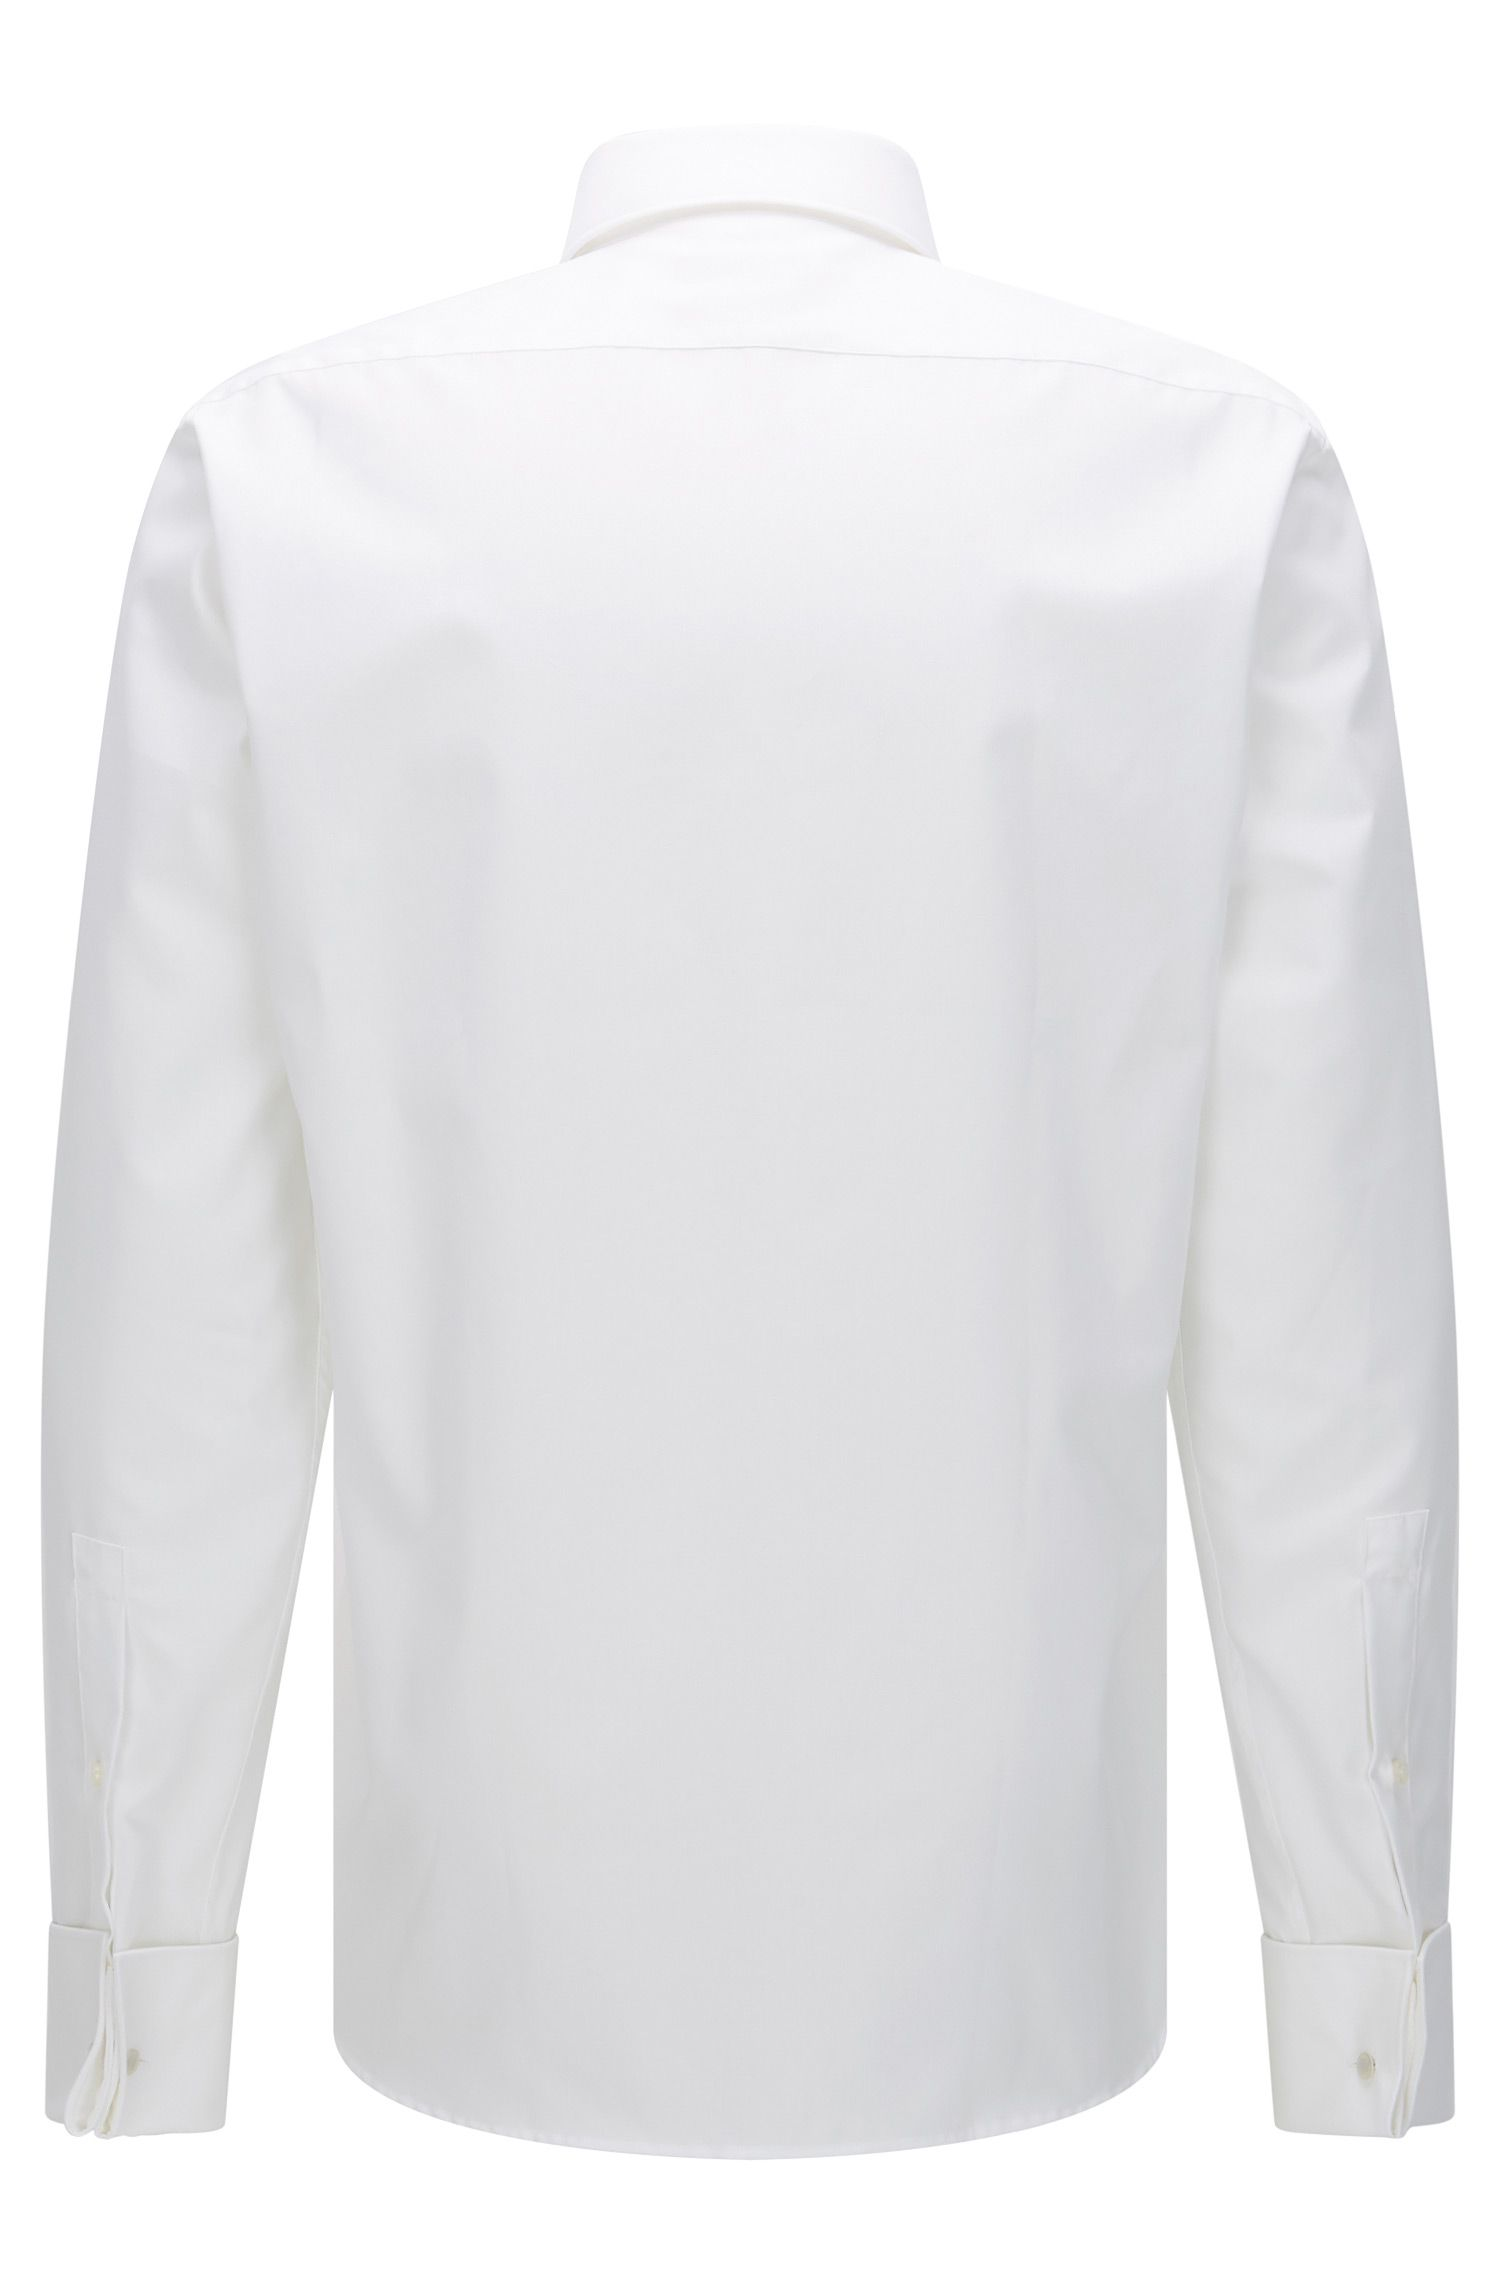 Regular-fit shirt in cotton poplin by HUGO Man, White